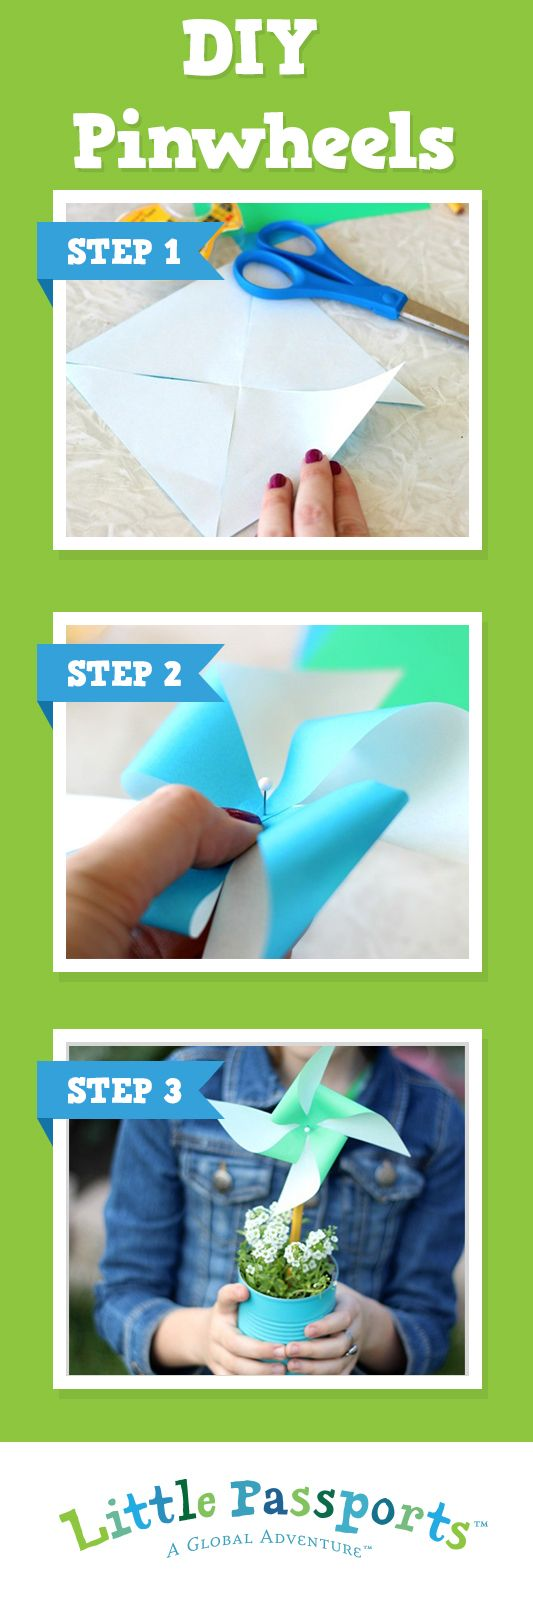 Earth Day is just around the corner! This year, teach the kids about wind power with these colorful pinwheels. They come together fast and spin in the wind even faster! Visit our blog to learn more.